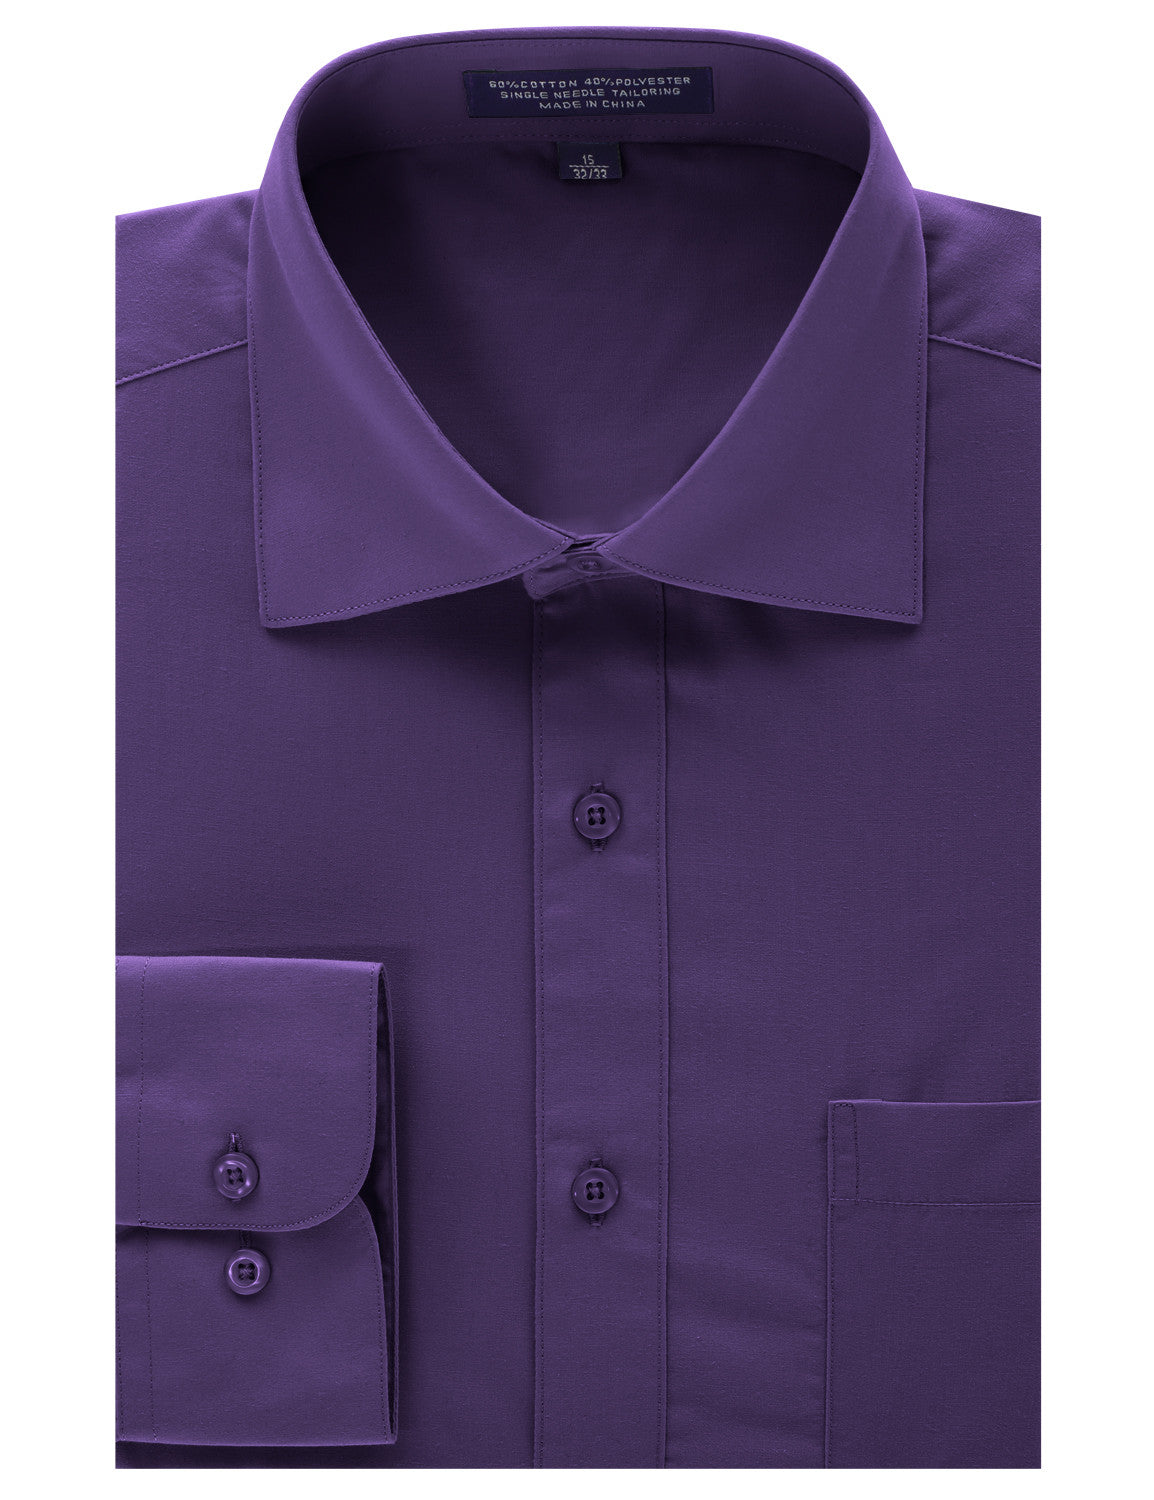 PURPLE Regular Fit Dress Shirt w/ Reversible Cuff (Big & Tall Available)- MONDAYSUIT